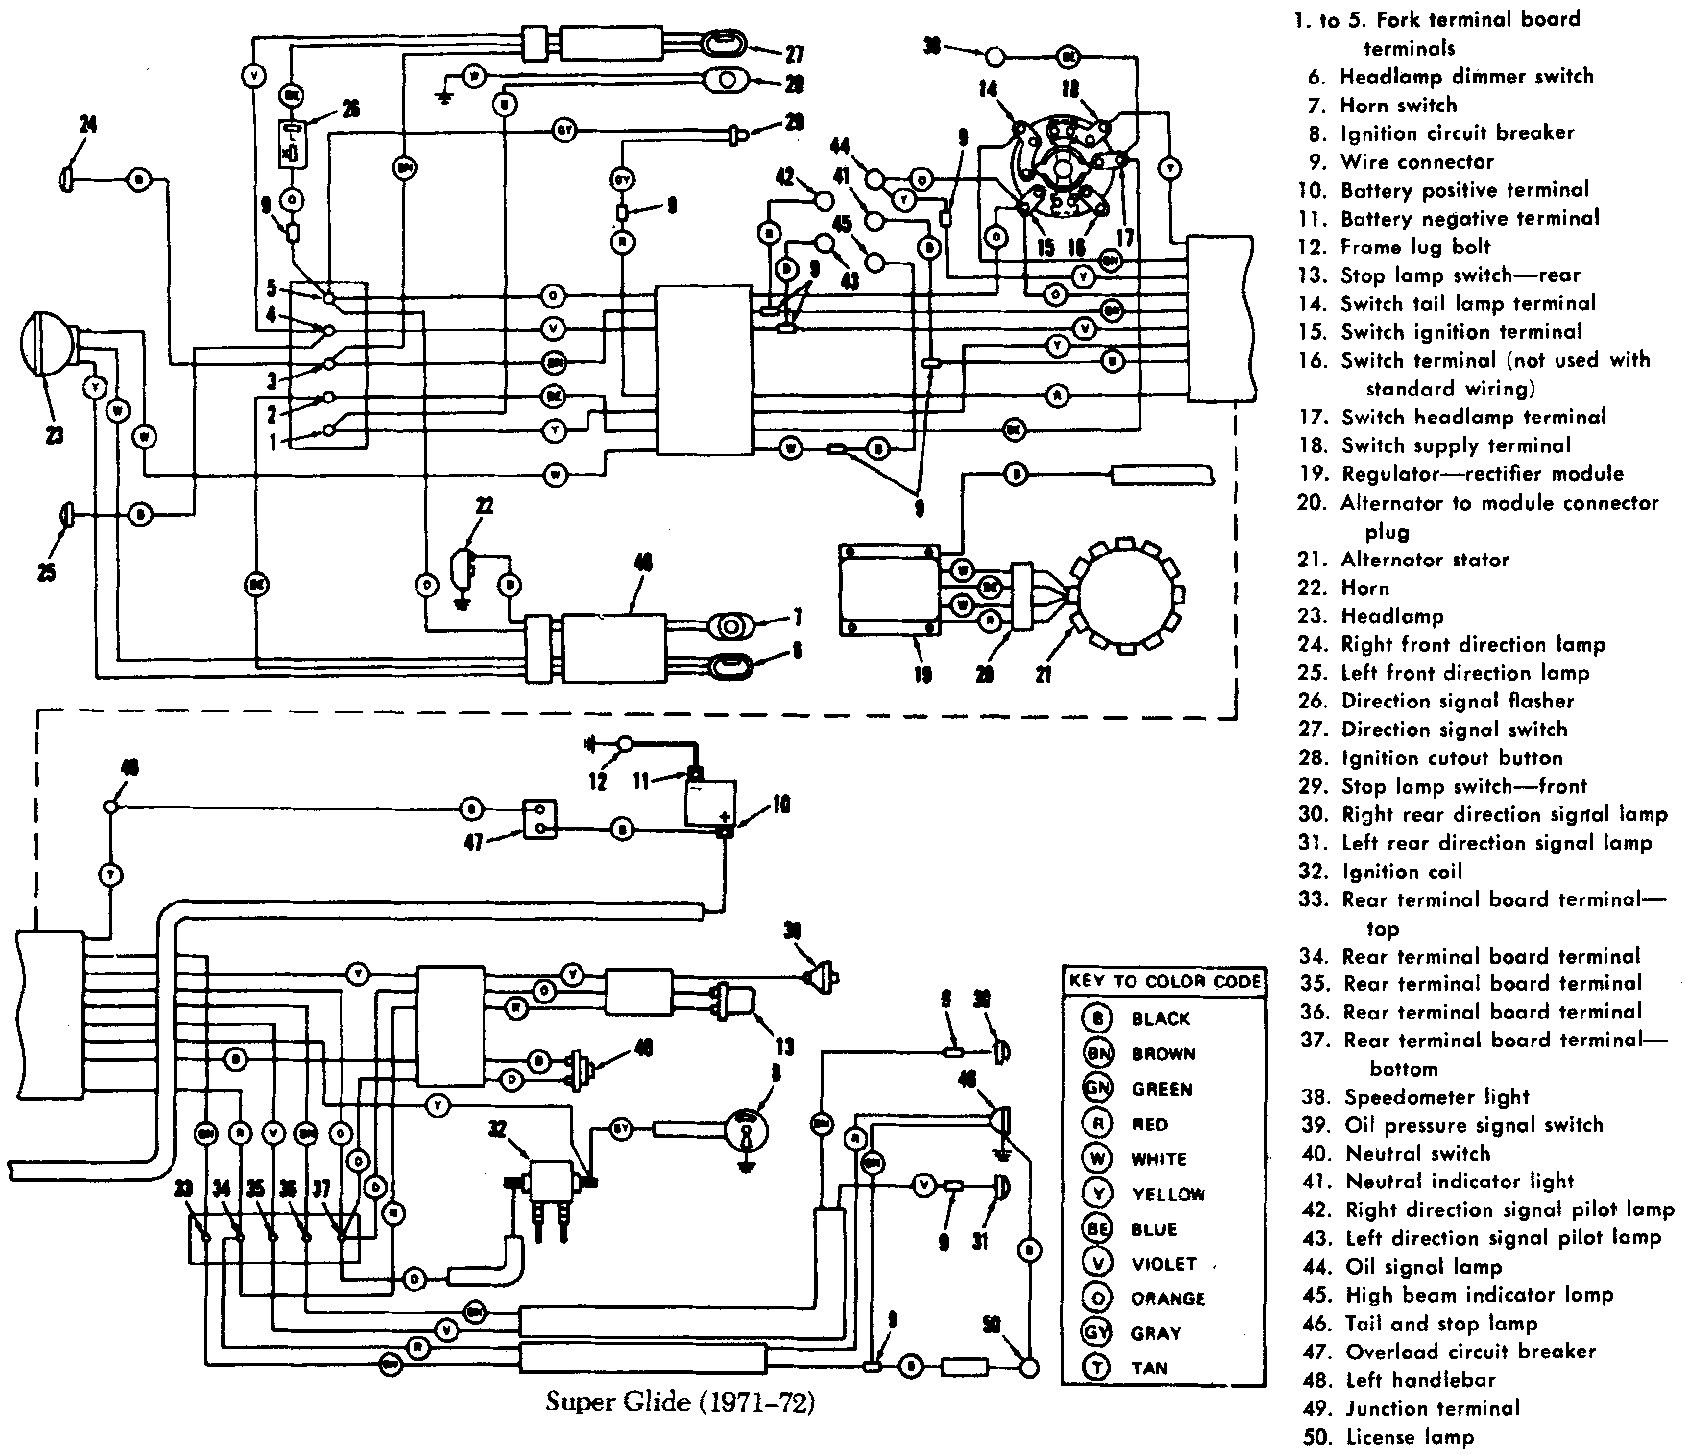 harley davidson wiring diagrams and schematics kenwood ddx470 diagram 1999 dyna wide glide electricity site best library